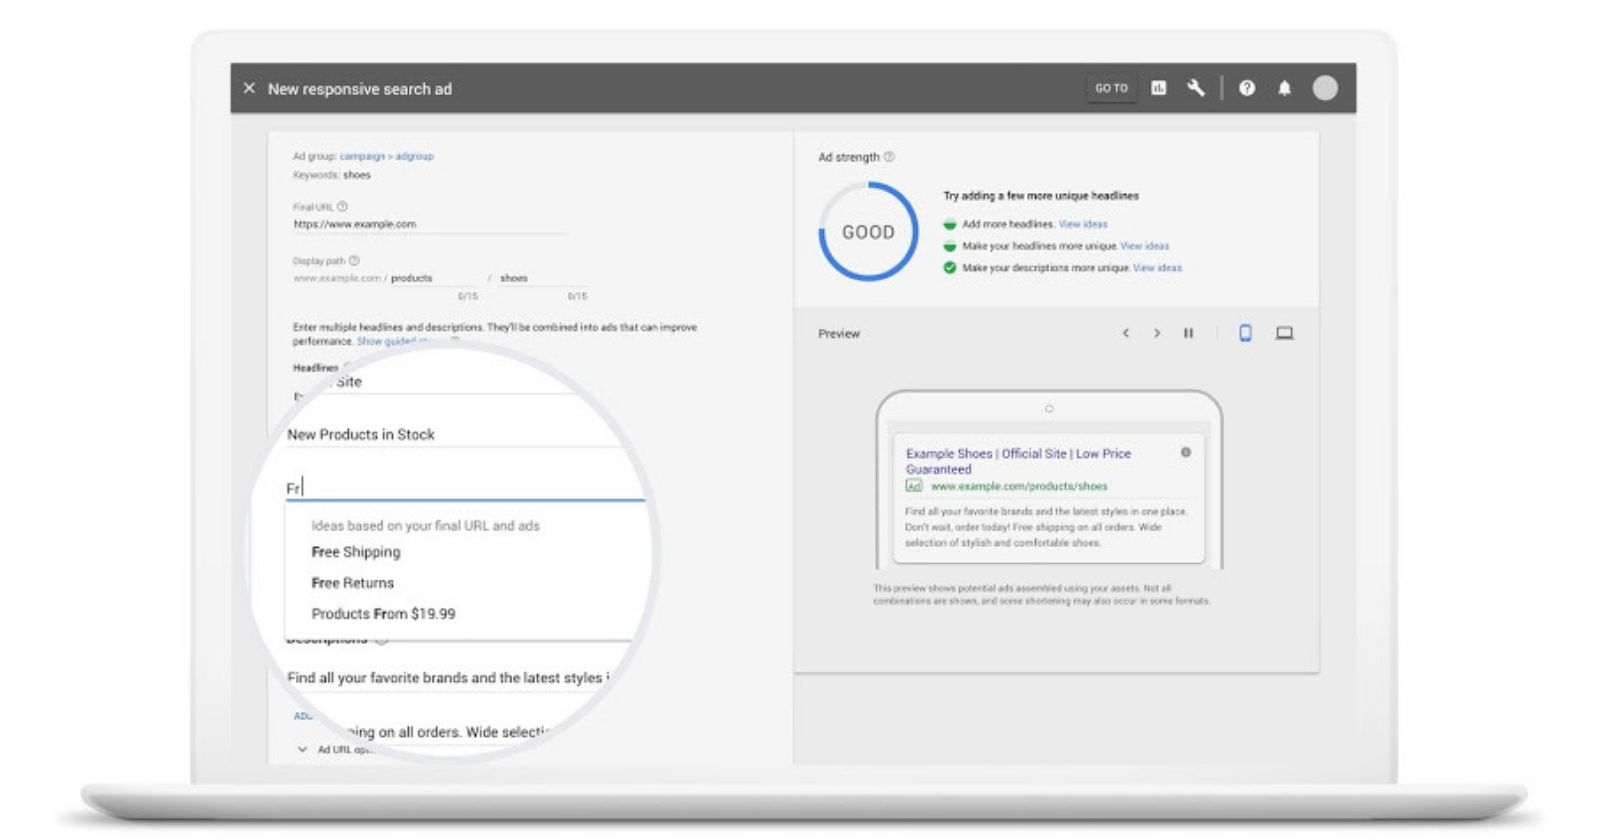 Google Introduces 4 New Tools For Responsive Search Ads Search Engine Journal Search Ads Search Engine Optimization Search Engine